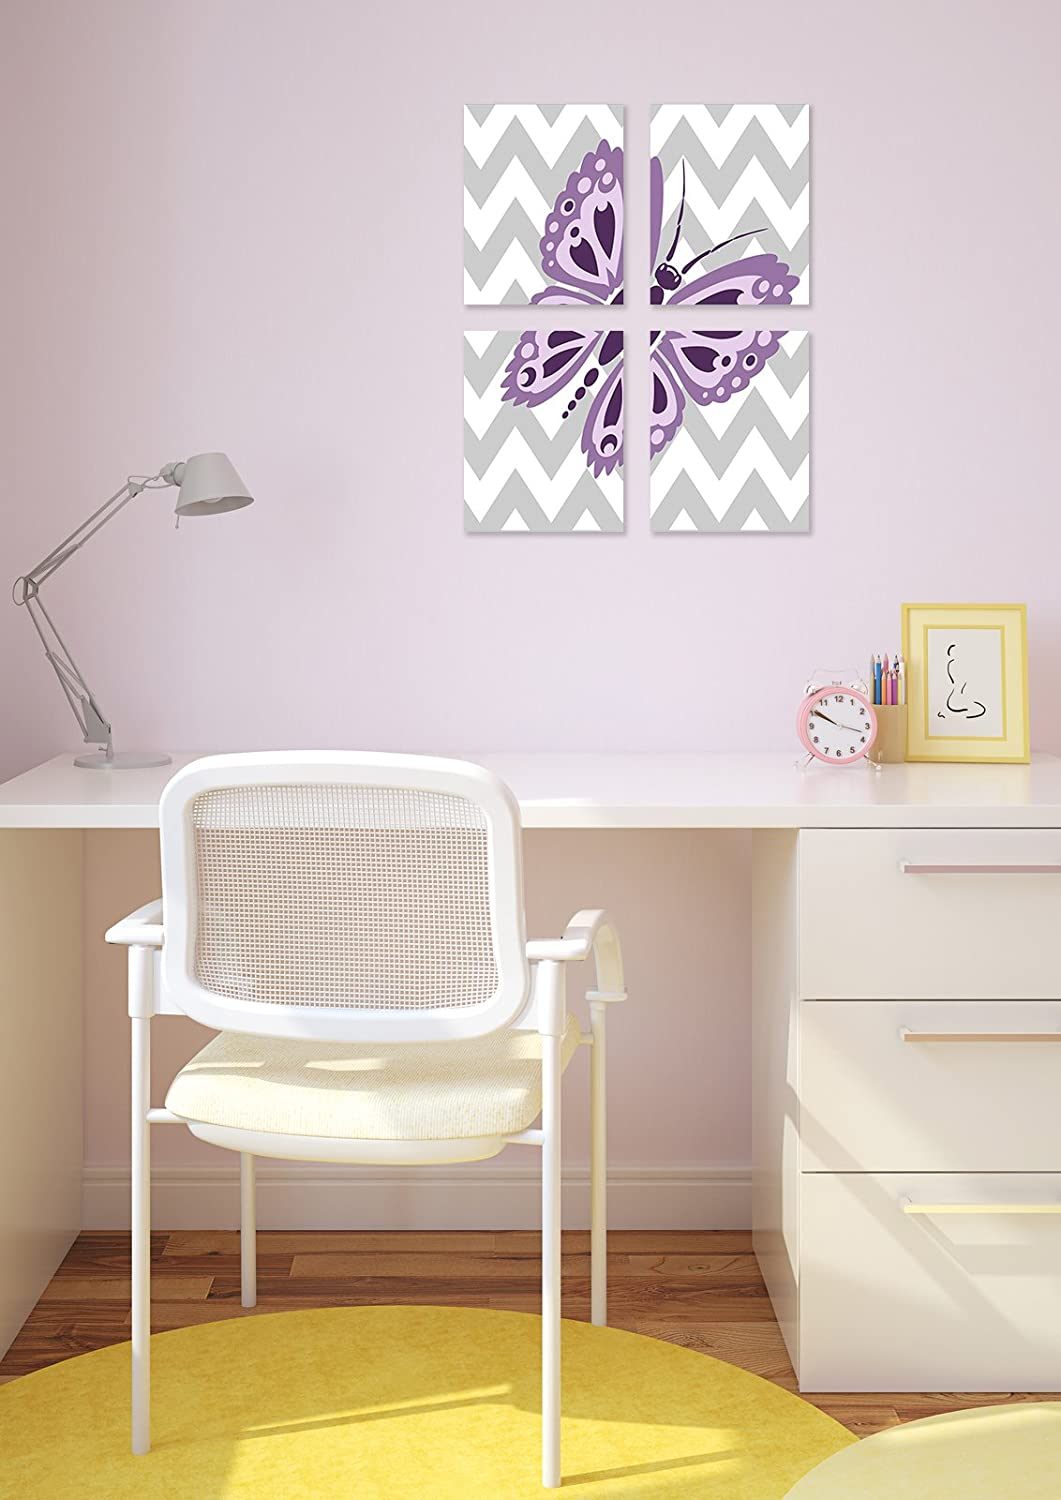 The Kids Room By Stupell Purple Butterfly On Grey And White Chevron 4-Pc Proudly Made in USA Rectangle Wall Plaque Set